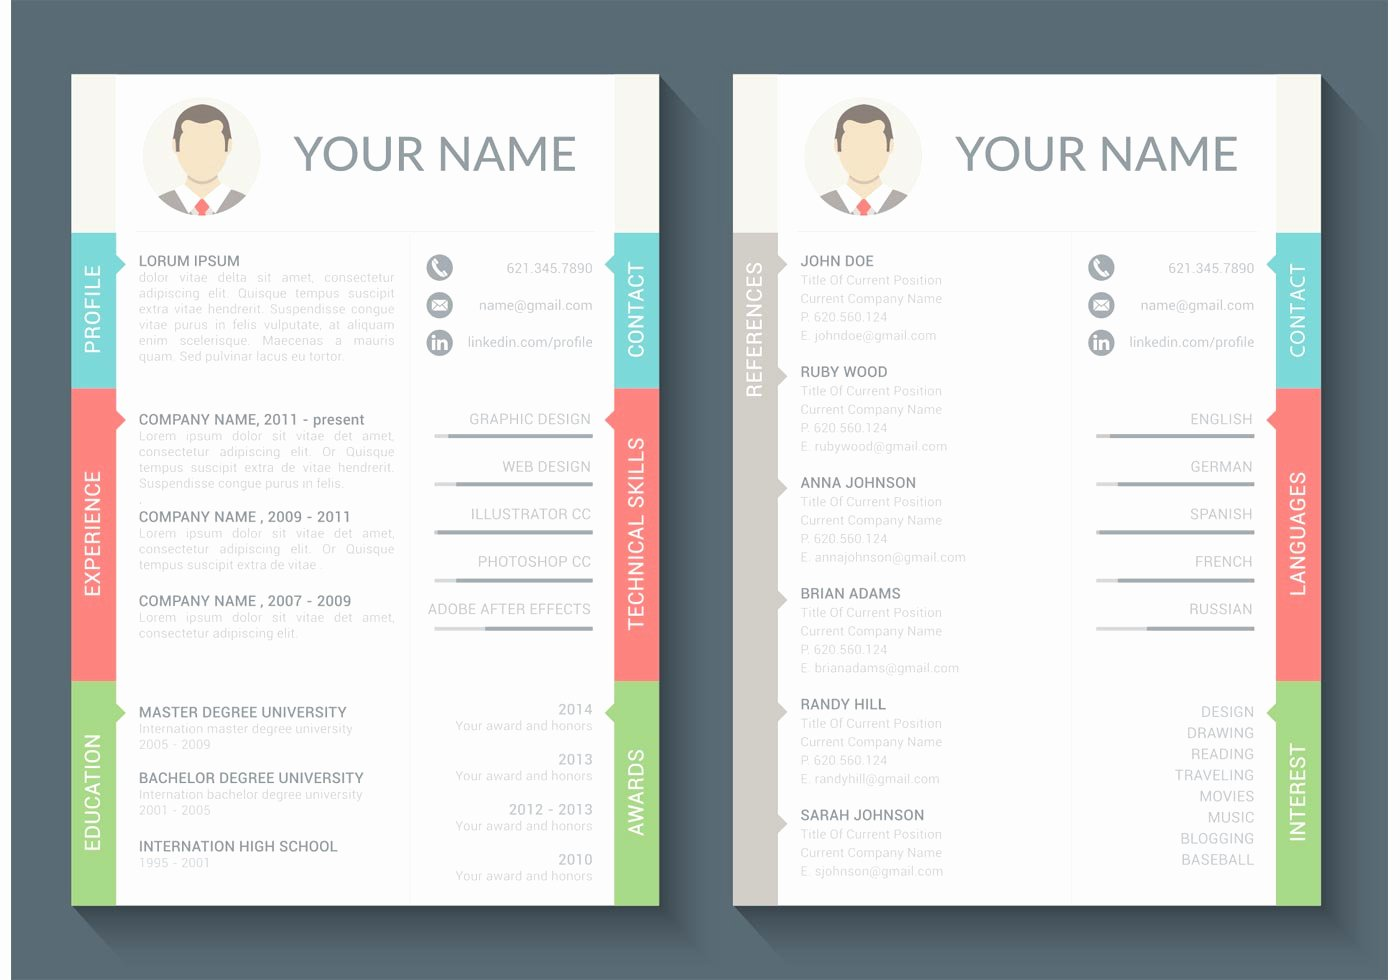 Curriculum Vitae Vector Template Download Free Vector